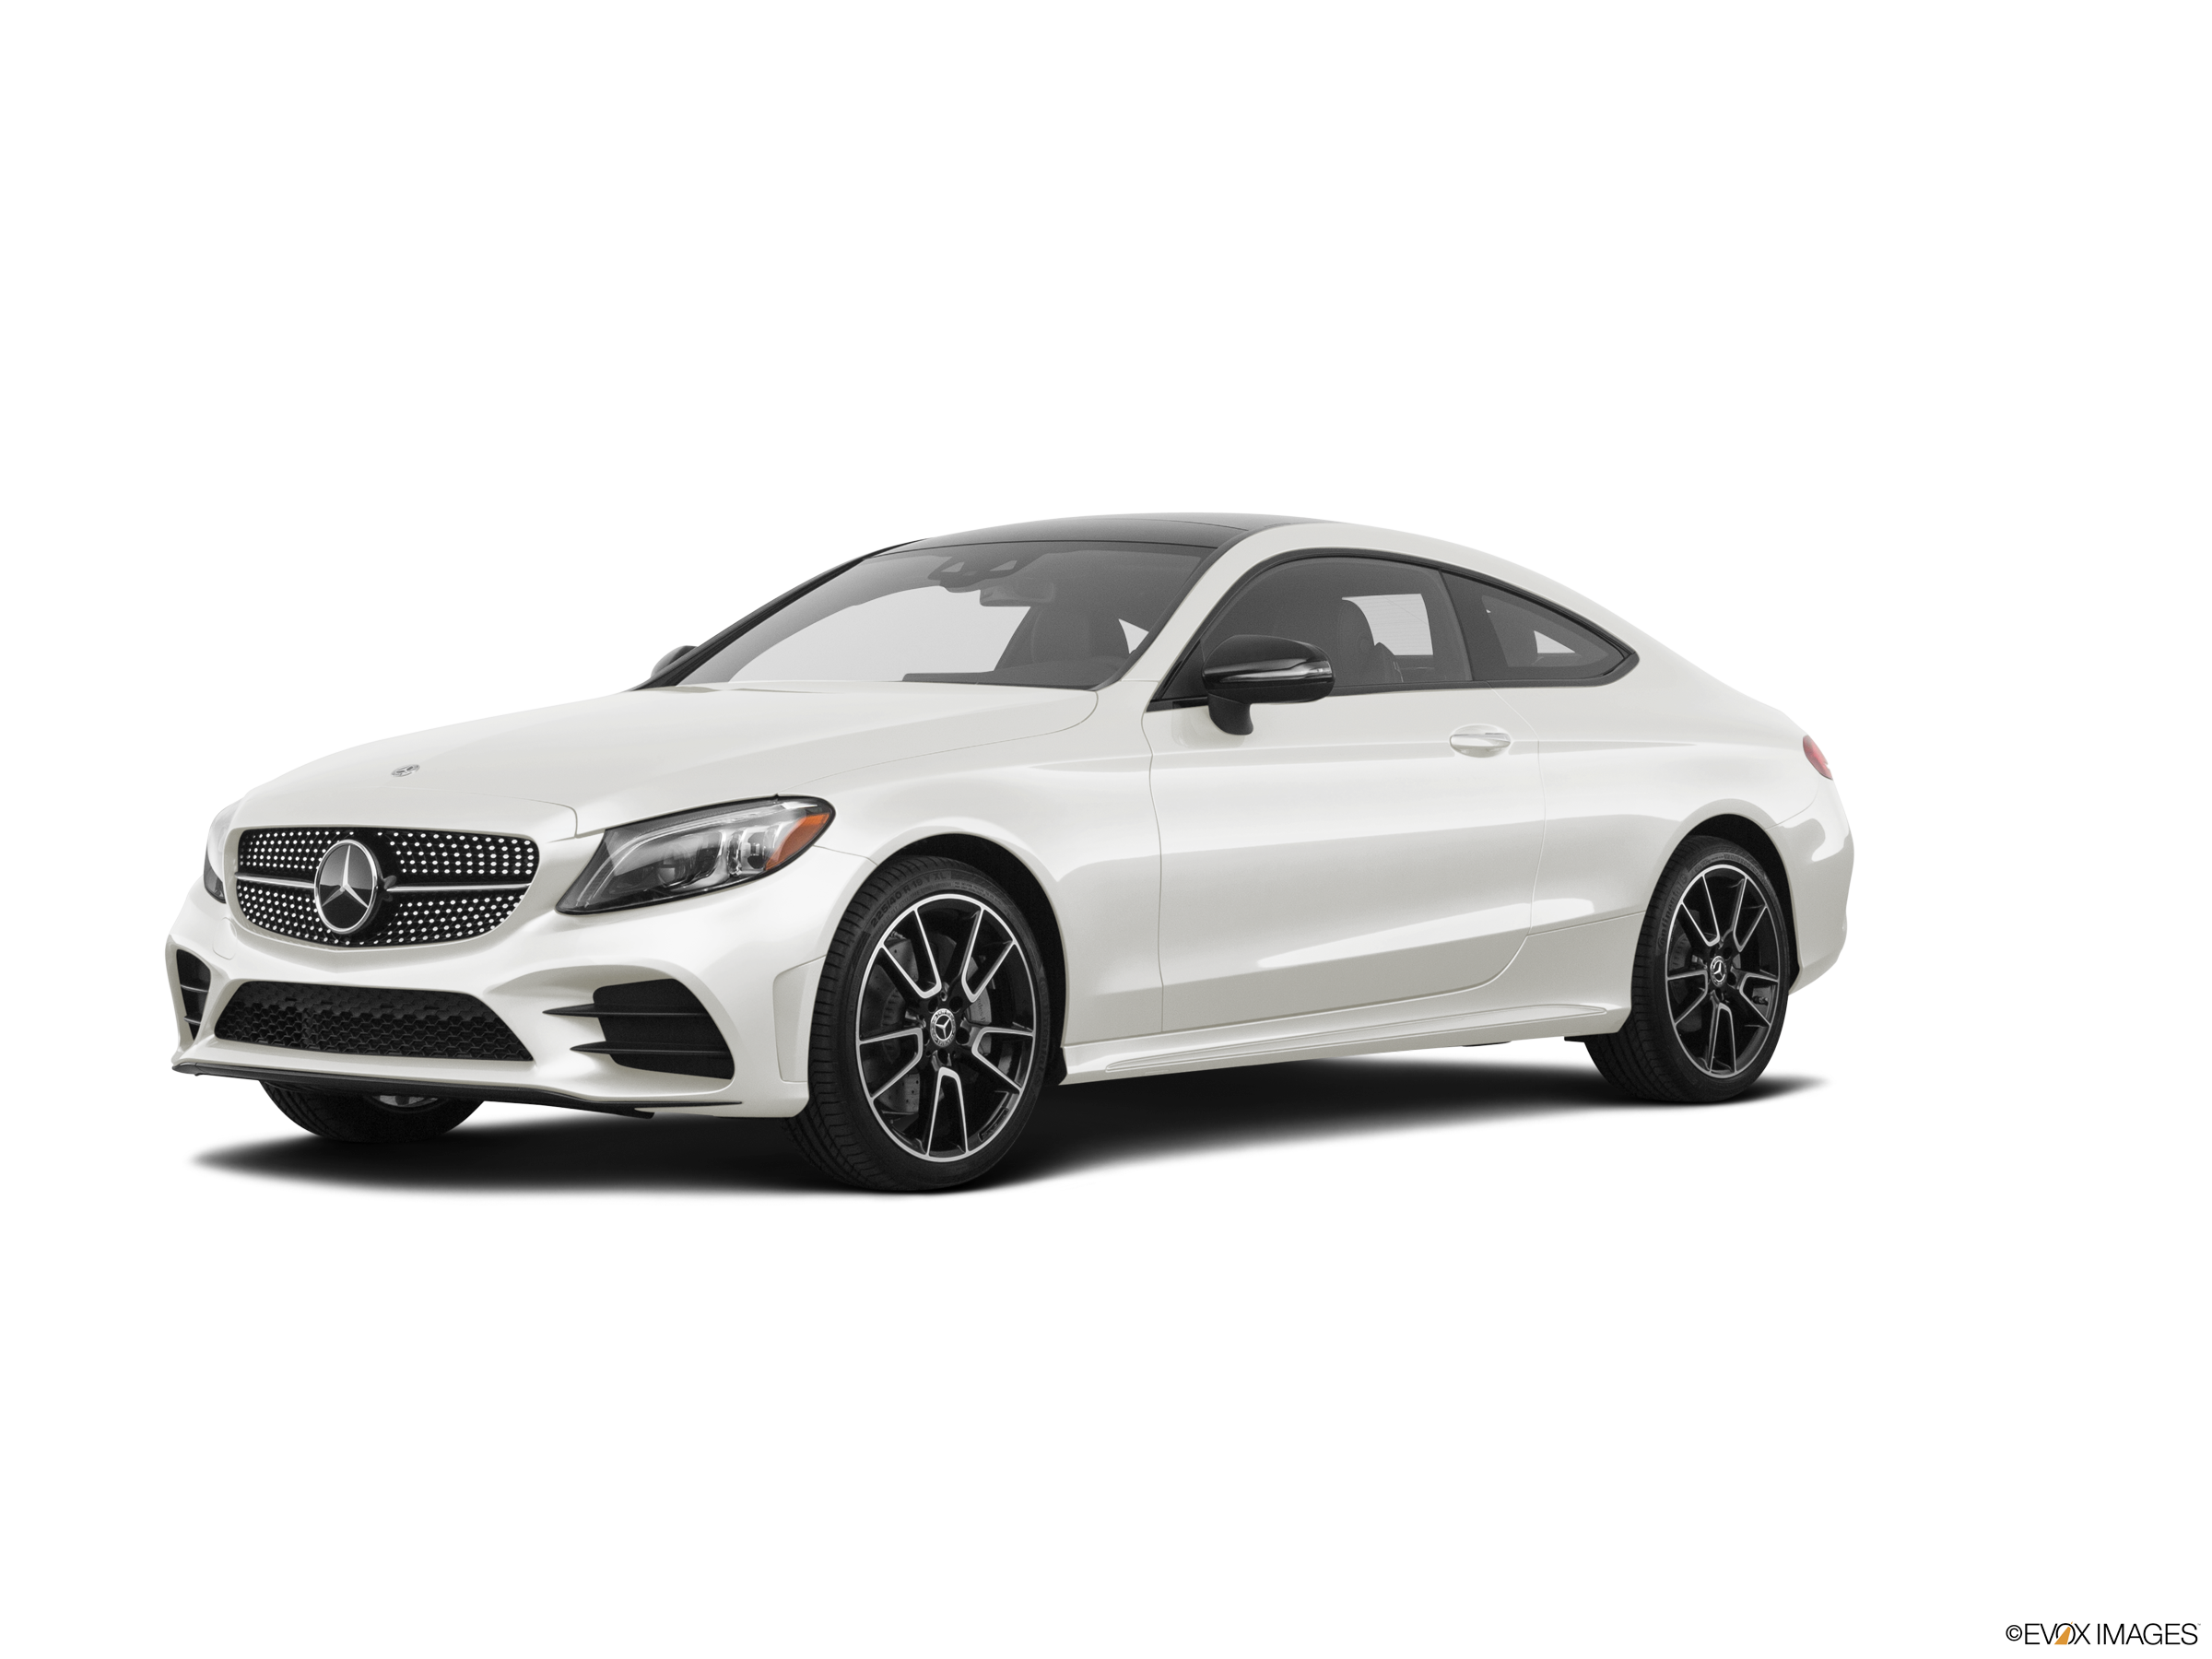 Top Expert Rated Coupes of 2019 - 2019 Mercedes-Benz C-Class